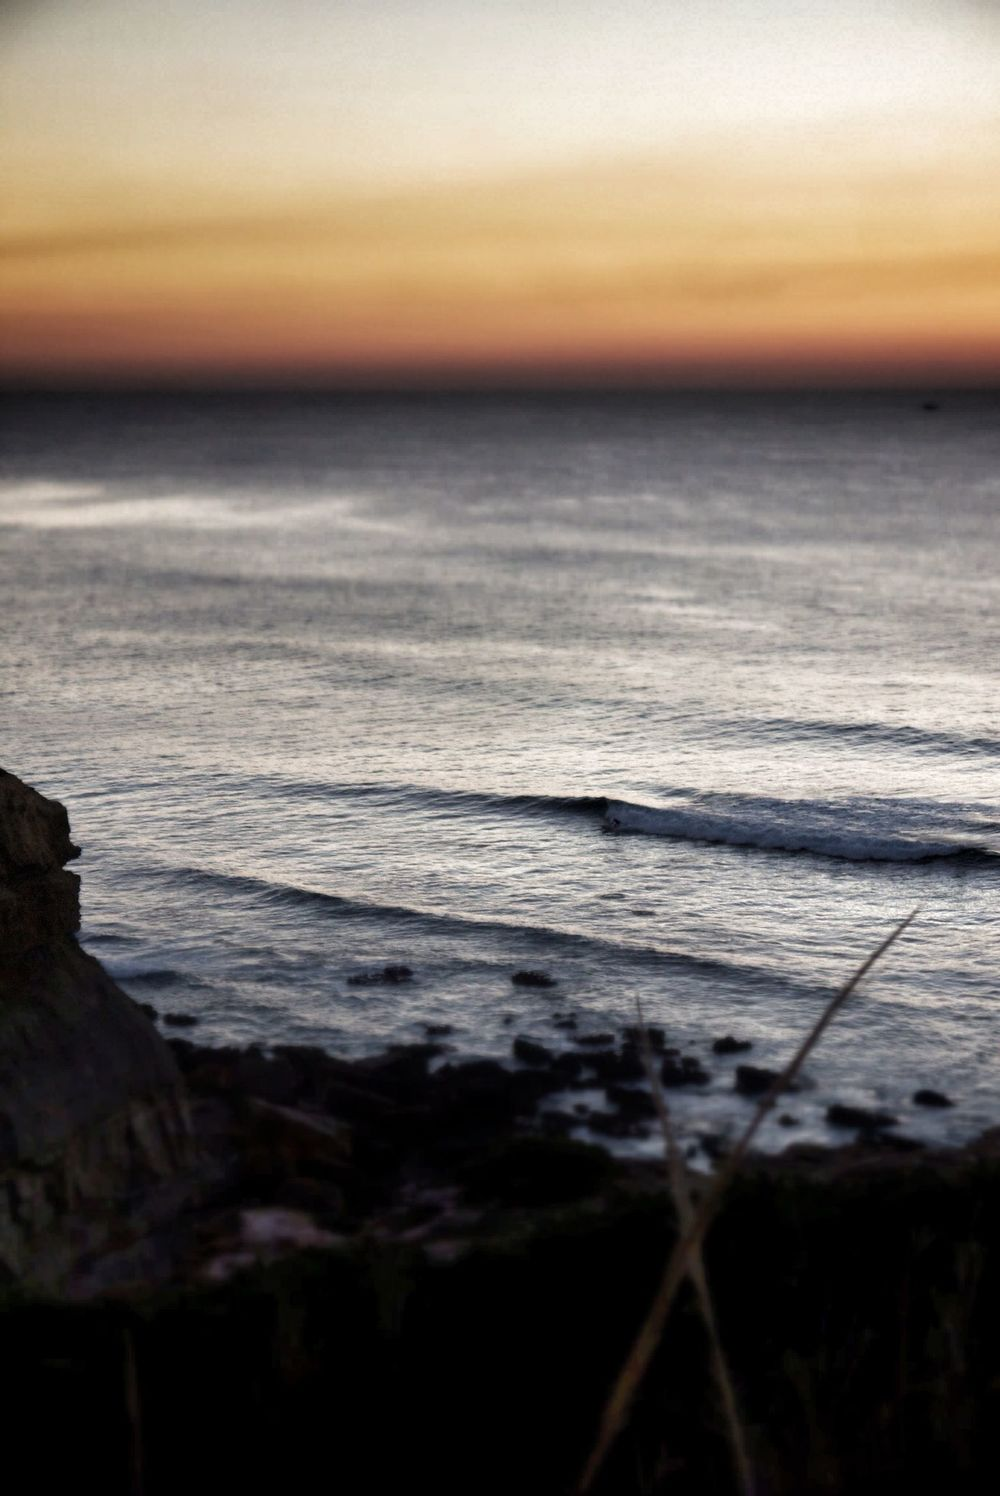 A lone surfer catches a wave as the sun sets in Peniche